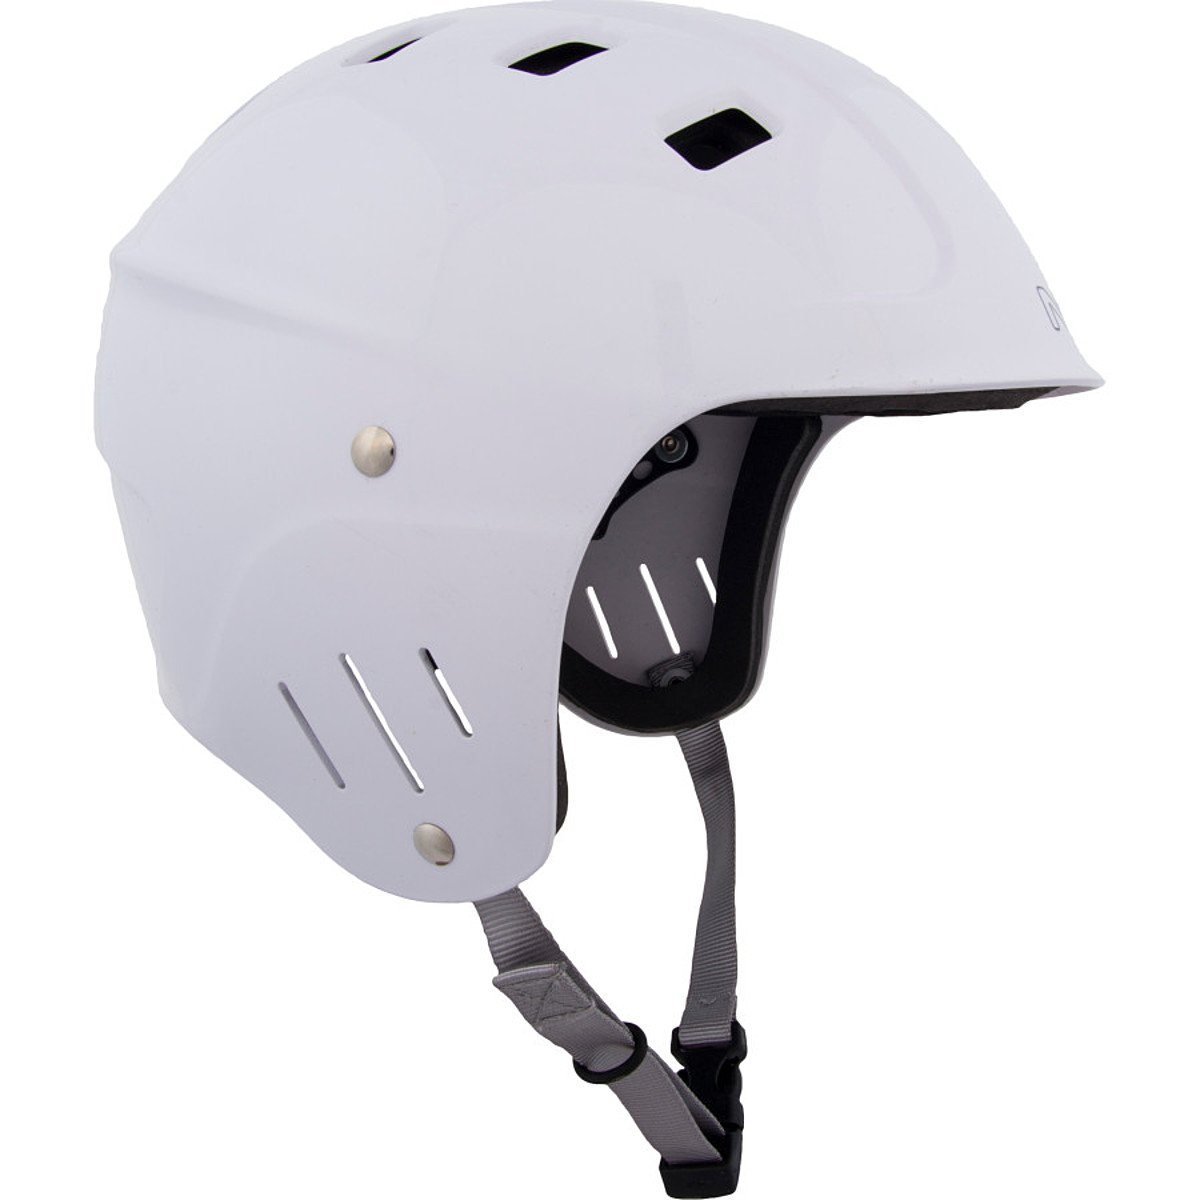 NRS Chaos Helmet - Full Cut White Large by NRS